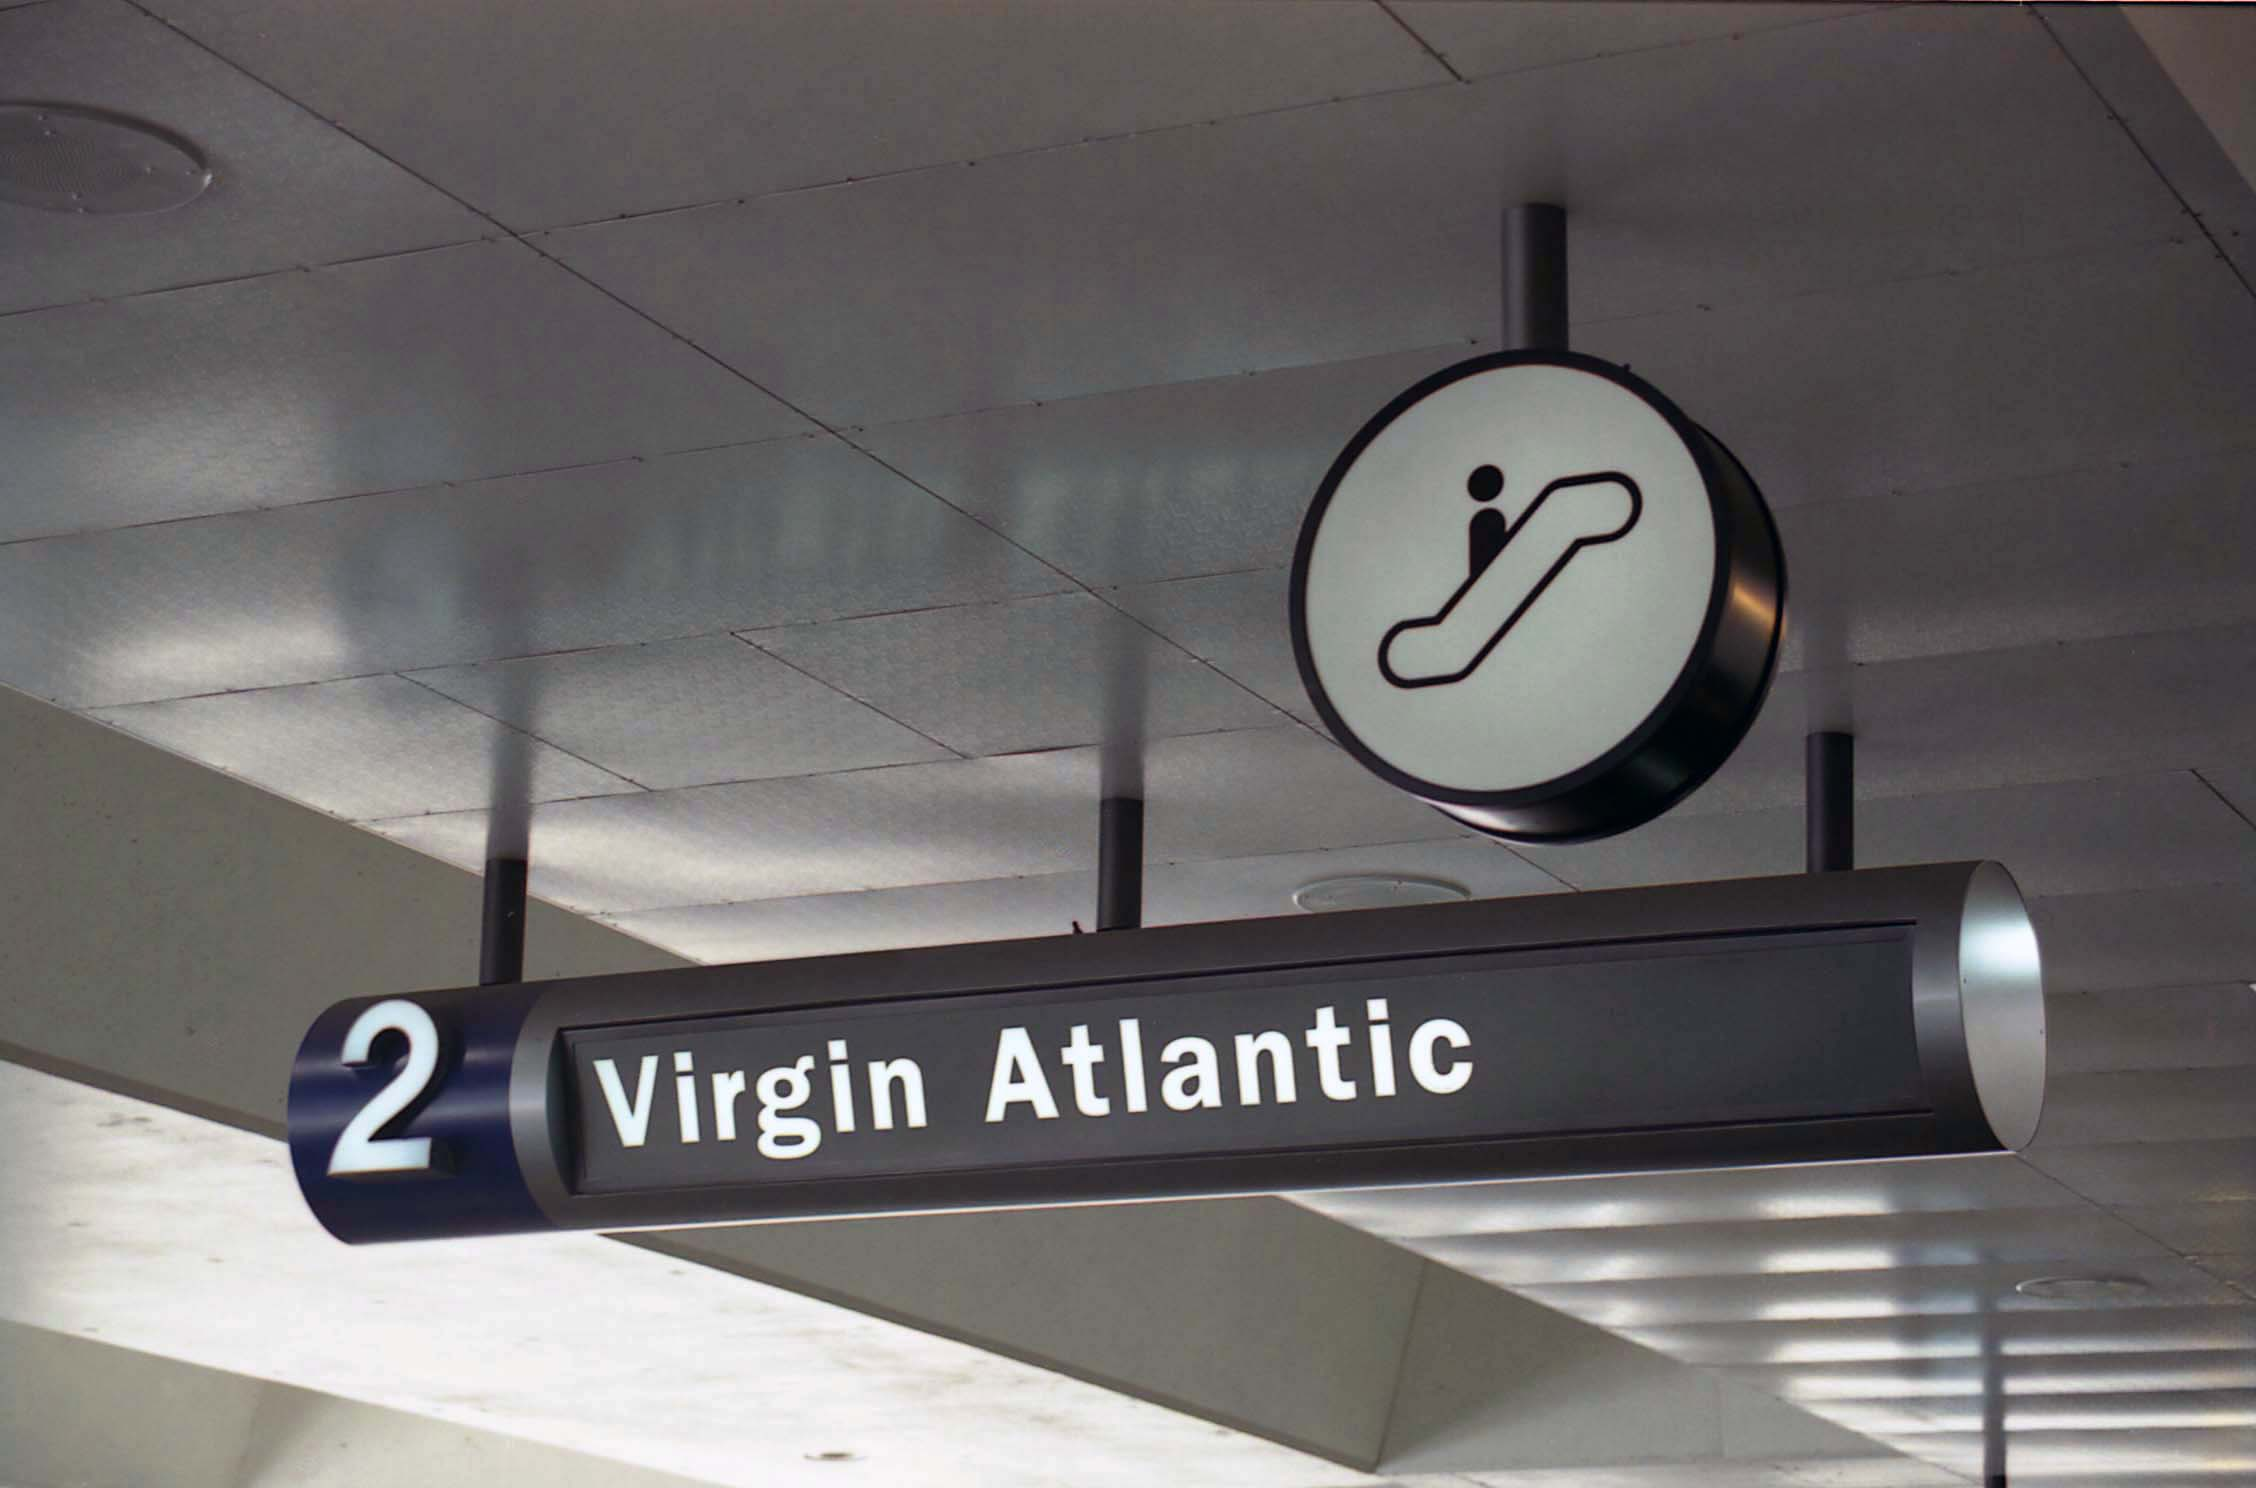 LAX-VirginAtlantic2.jpg